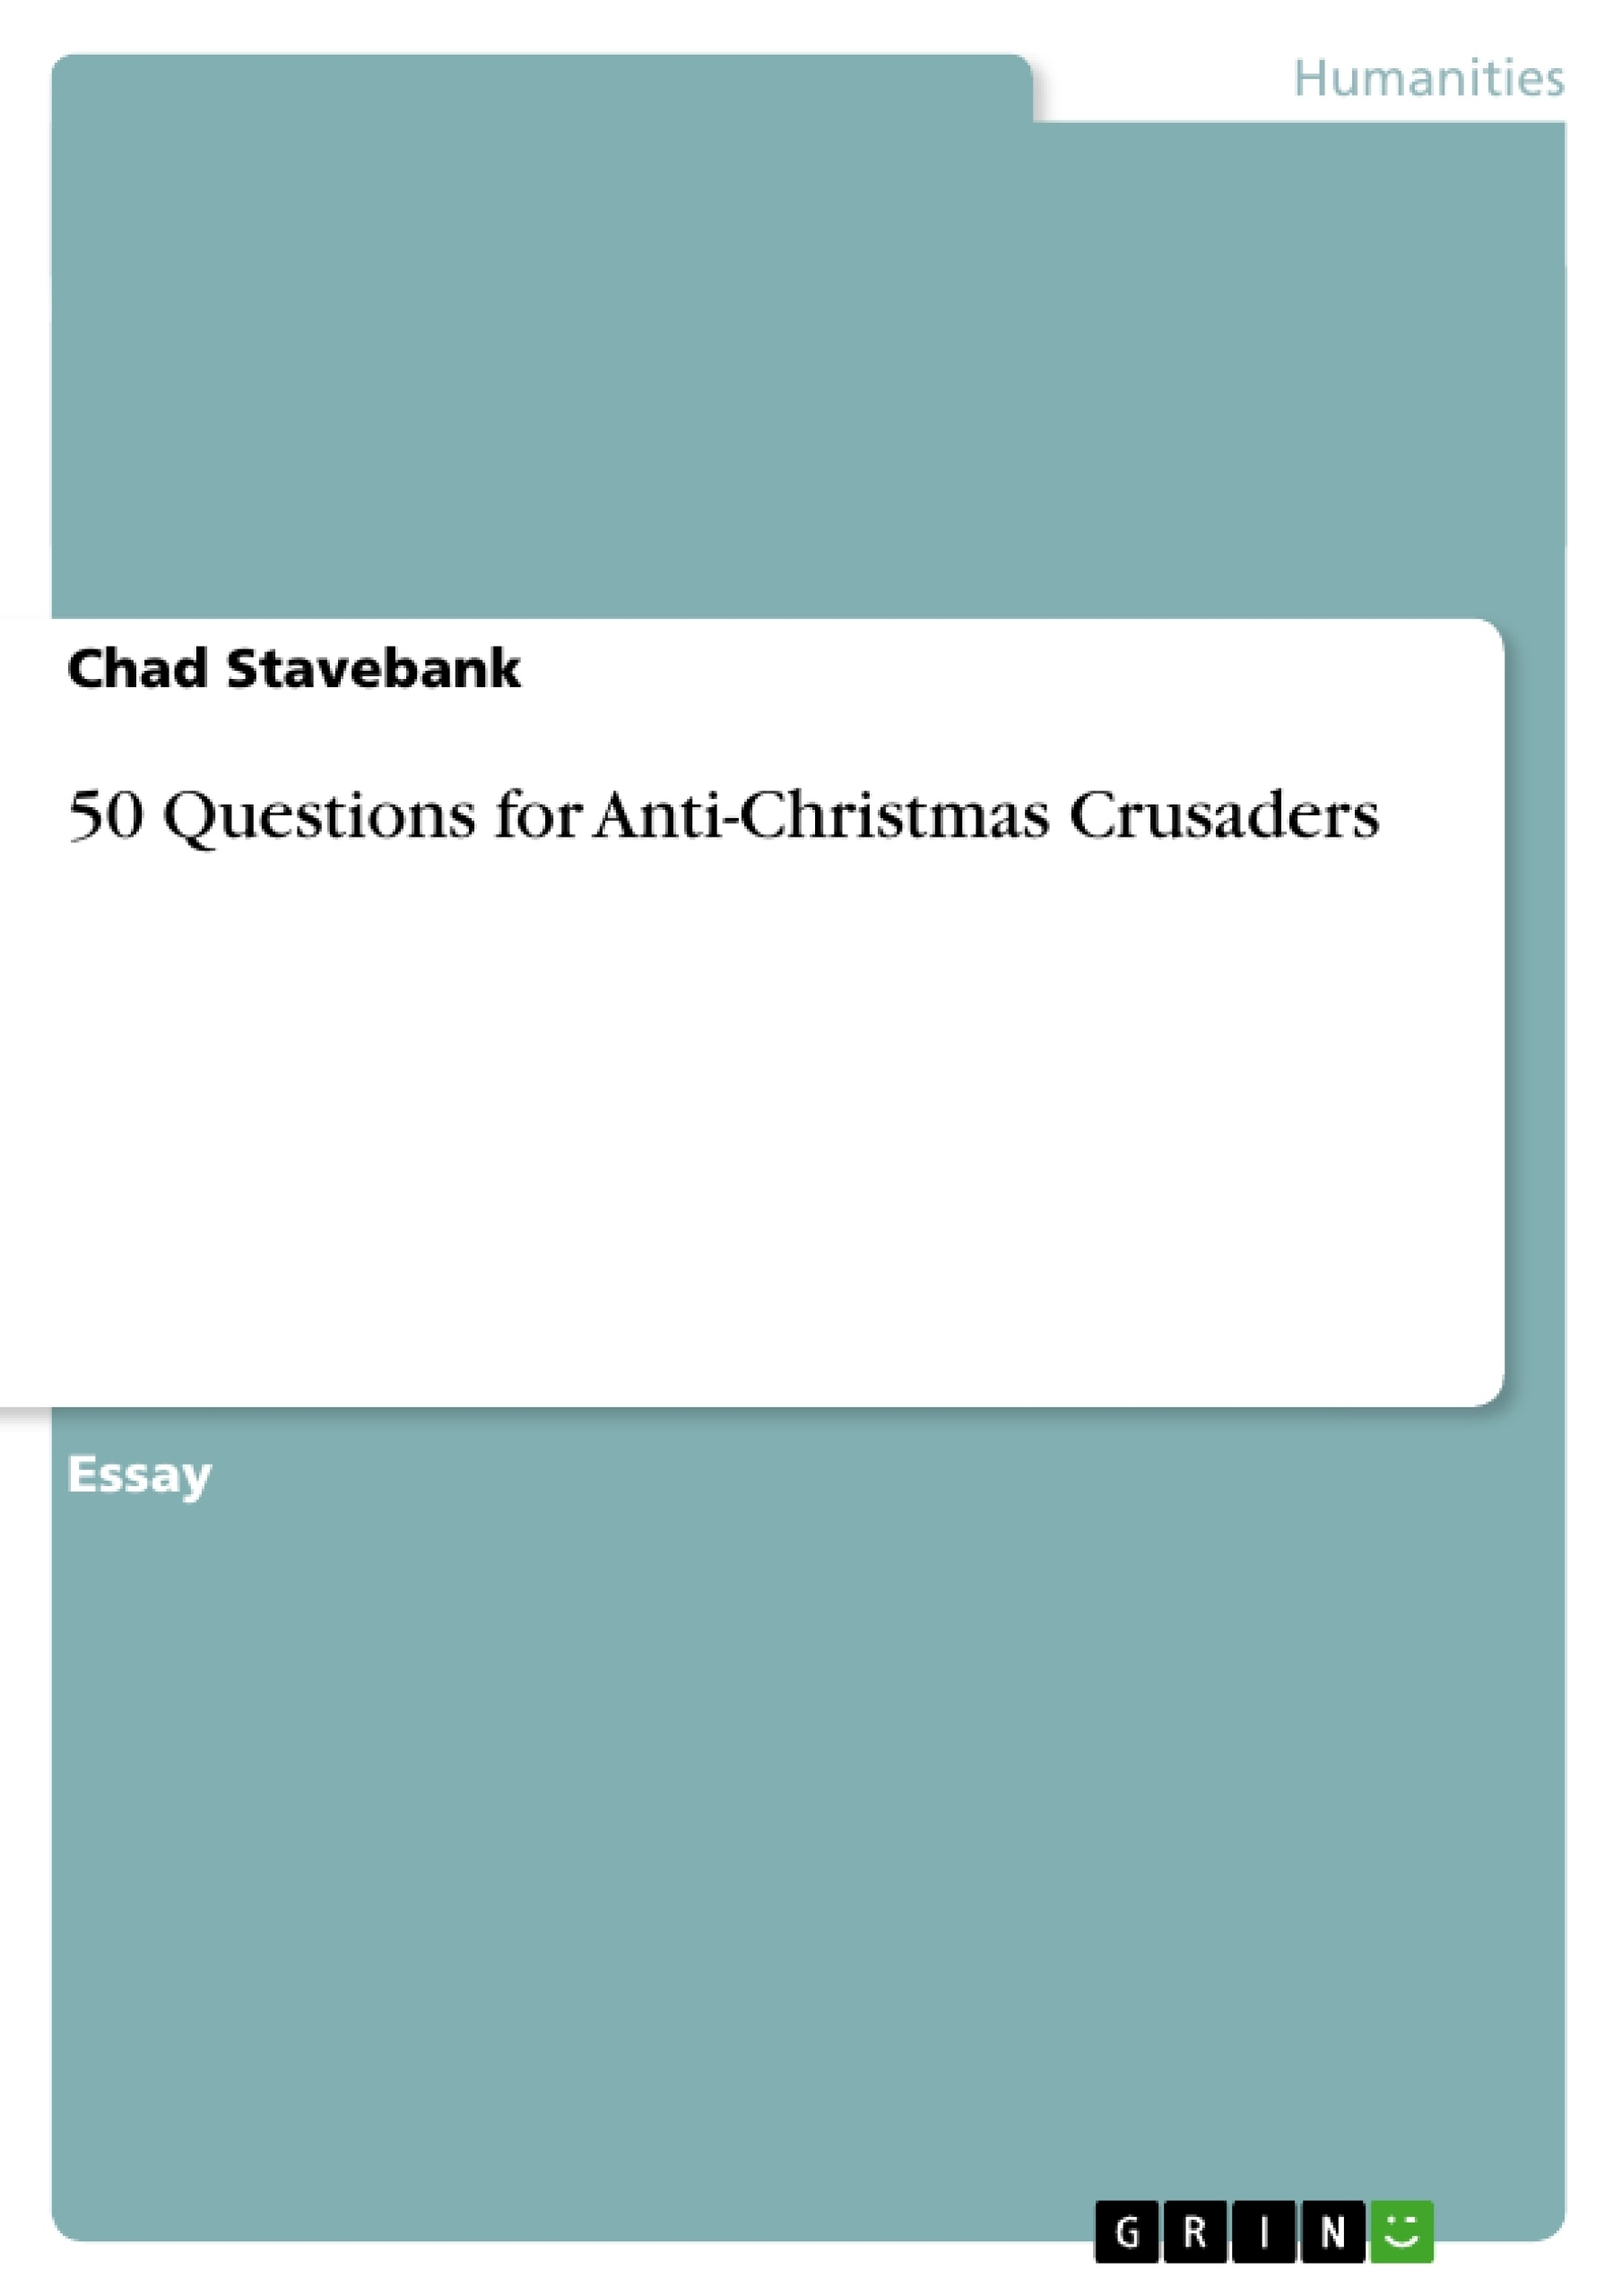 Title: 50 Questions for Anti-Christmas Crusaders